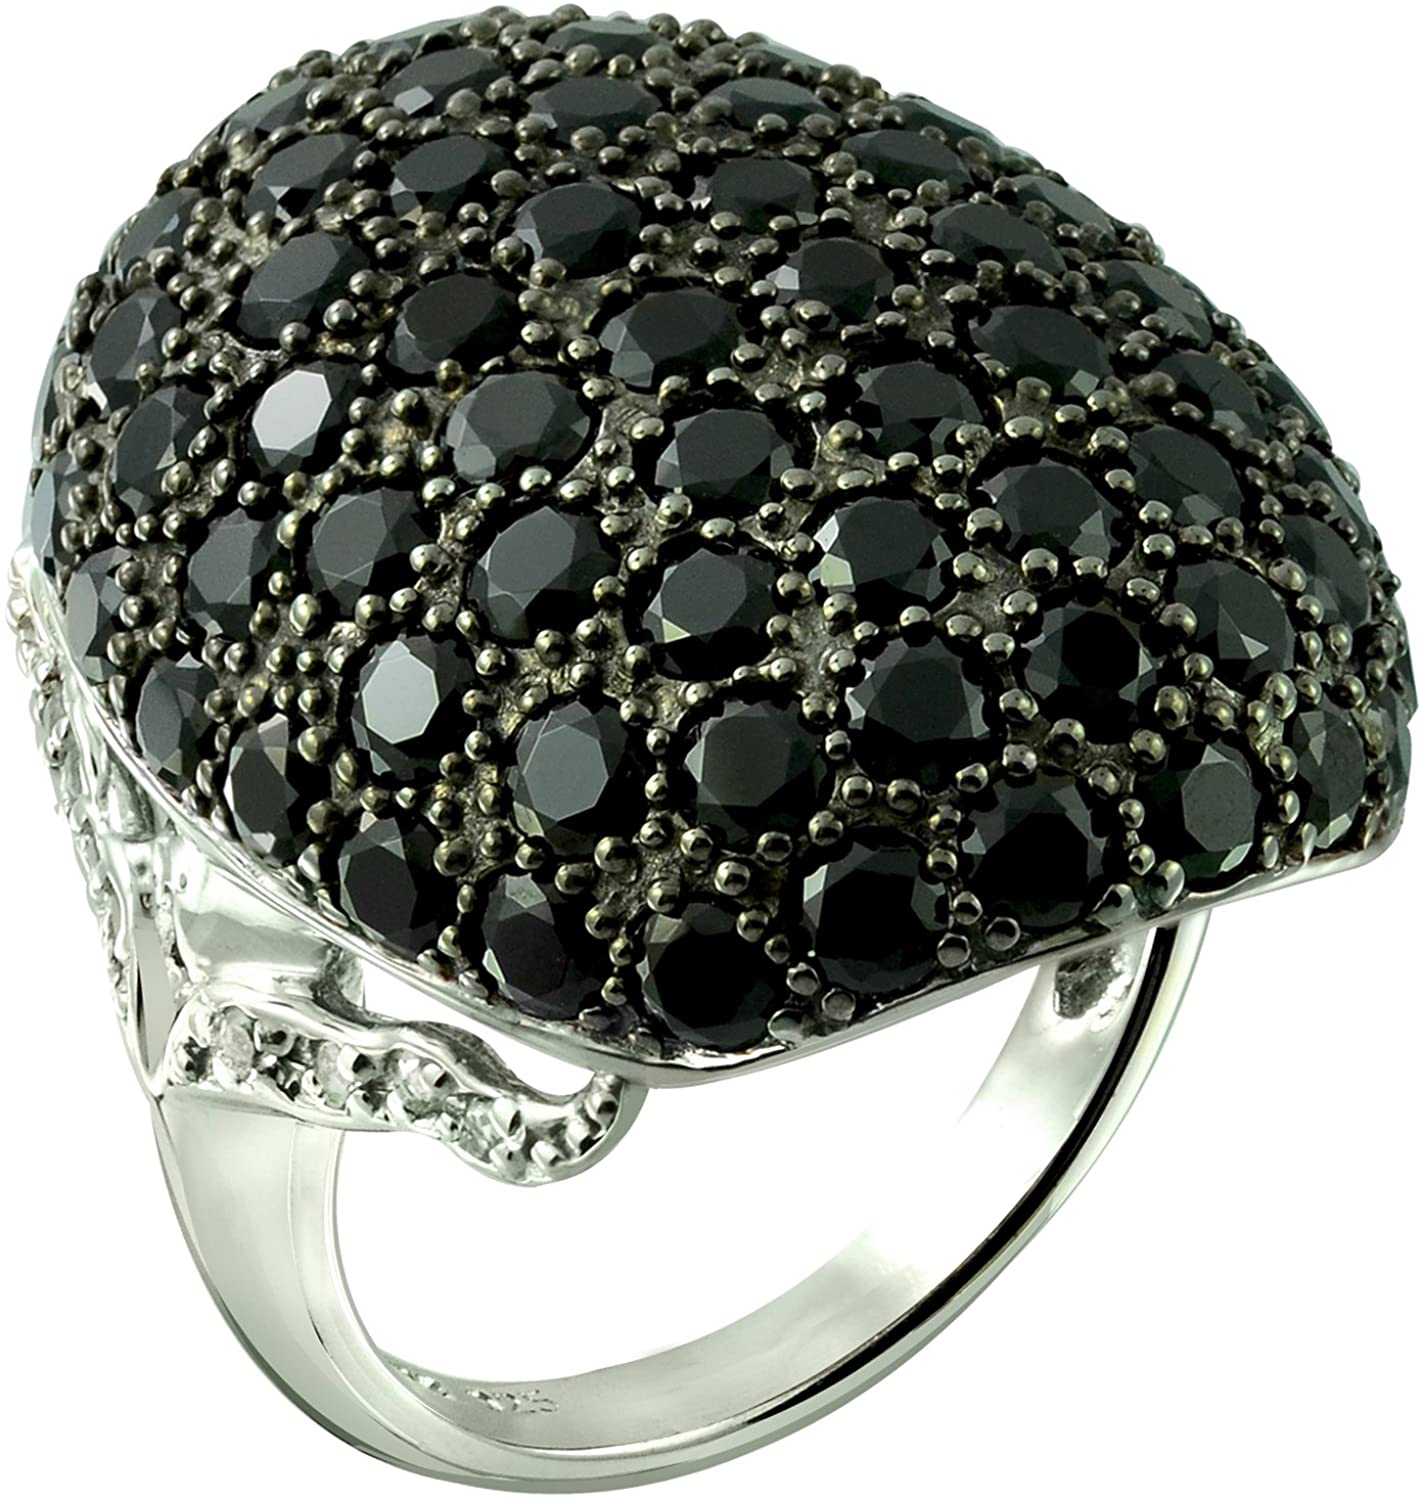 RB Gems Sterling Silver 925 Statement Ring Genuine Black Spinel 8 Cts Cluster Style Rhodium-Plated Finish